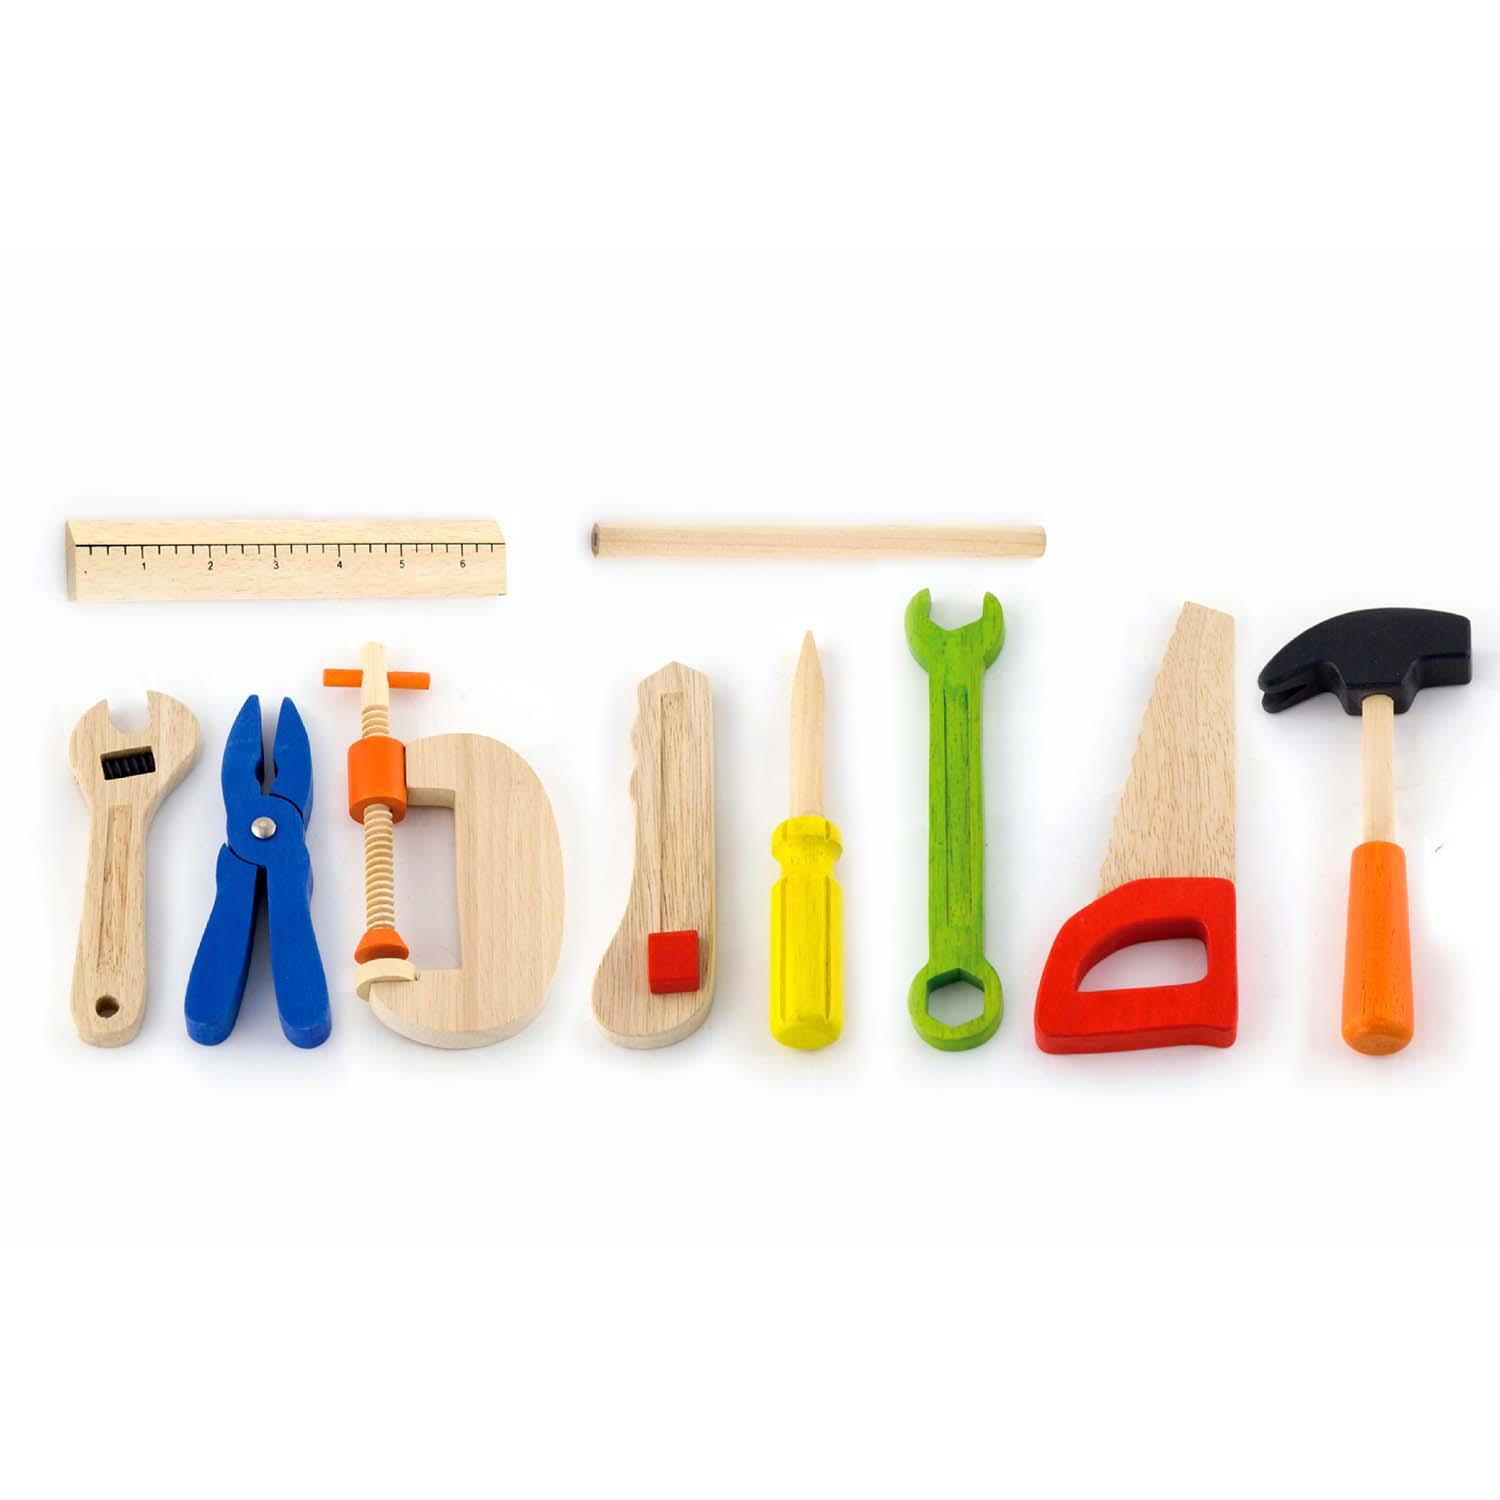 Toy Tool Sets For Boys : Childrens wood piece play toy tool box kit set